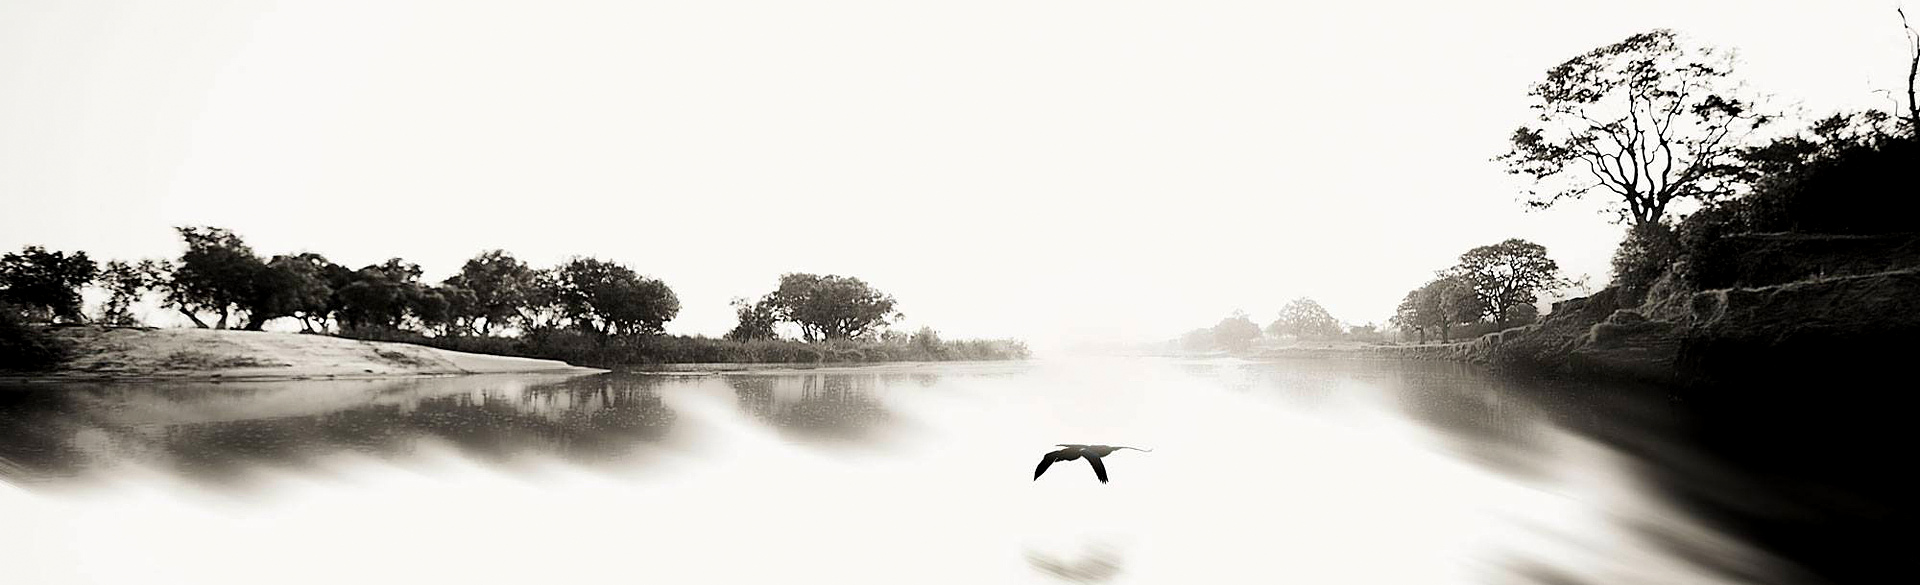 'Silent World' Siansimba, Zambezi National Park by Tami Walker